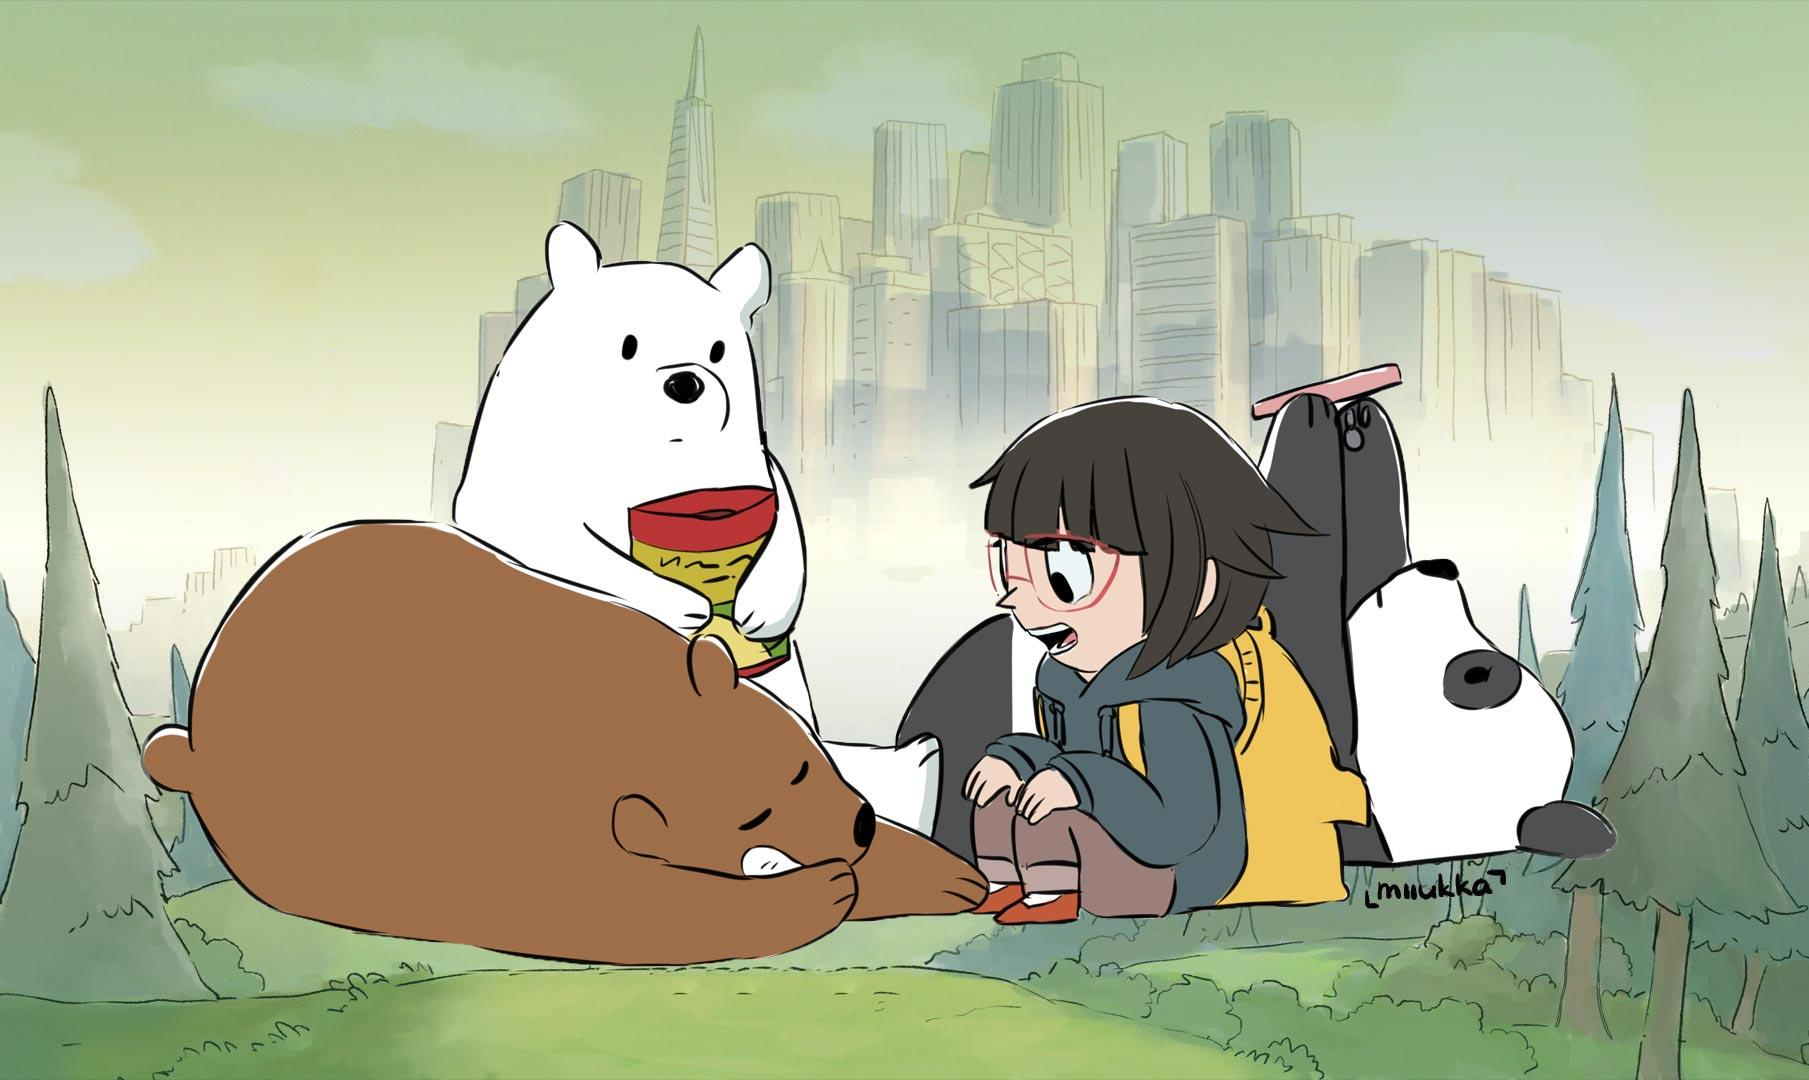 We Bare Bears 2018 Wallpapers - Wallpaper Cave